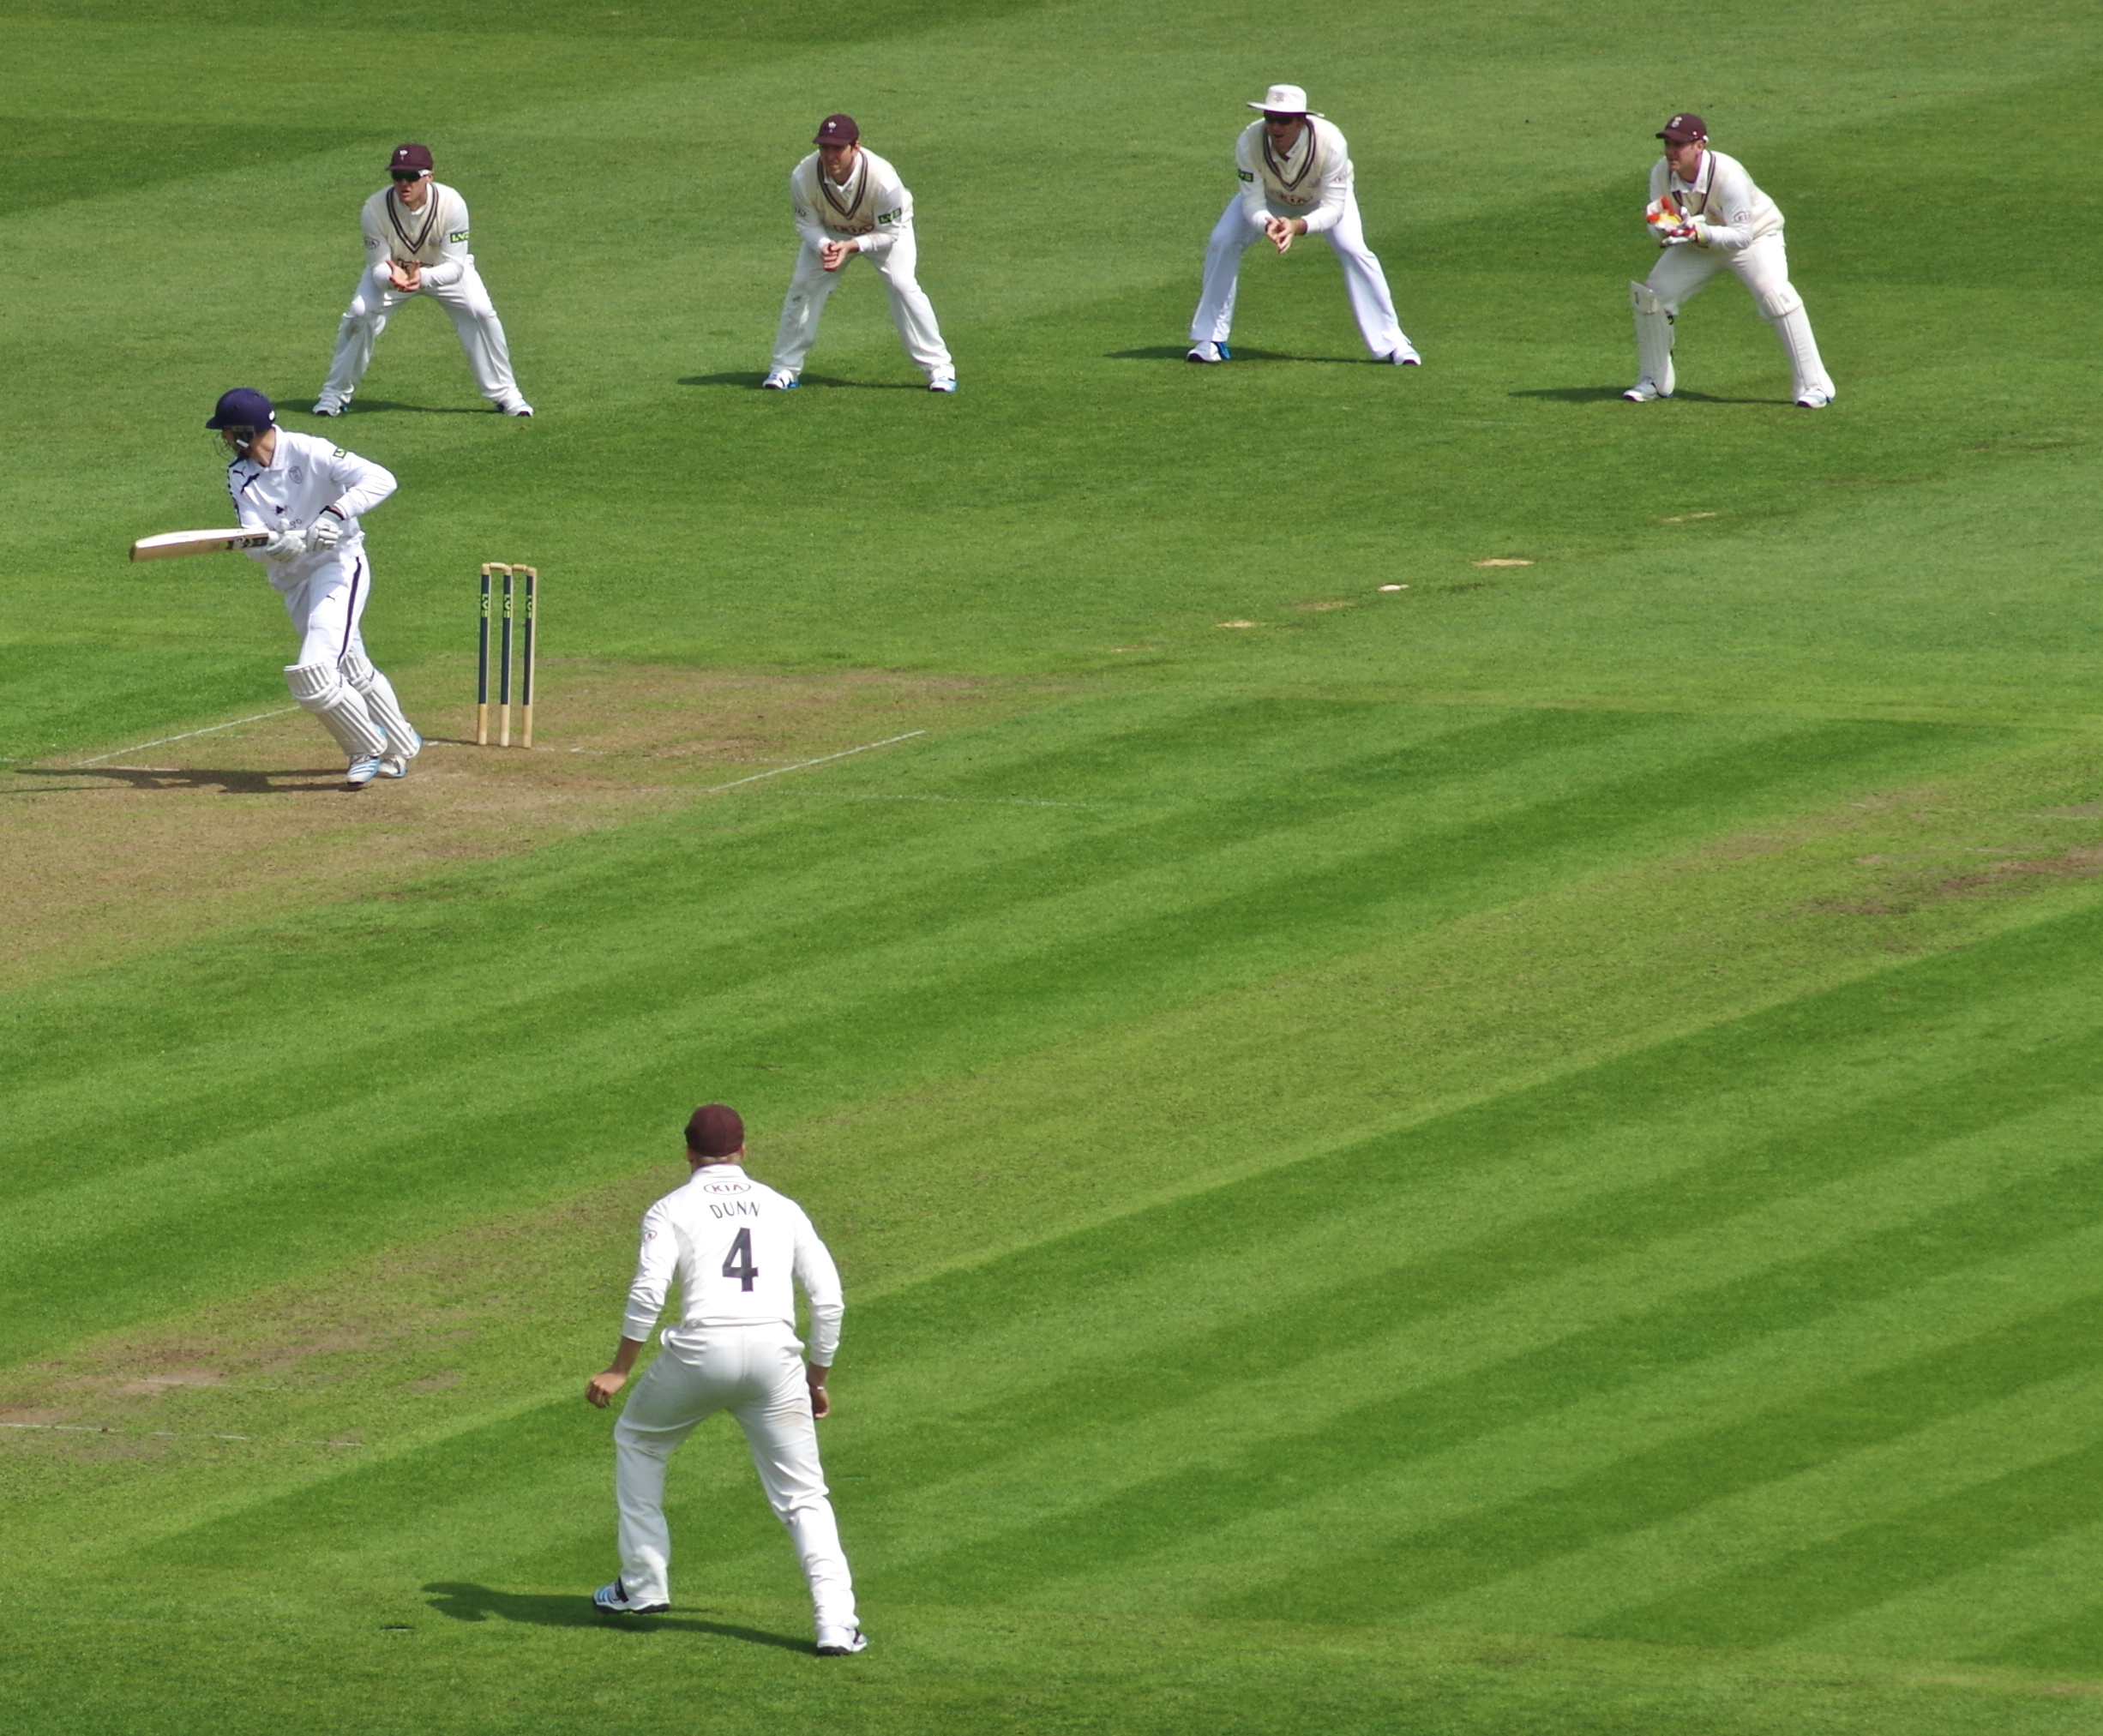 history of cricket essay Essay on cricket the exciting game of cricket cricket is widely known and played all over the world, but the most fanatic countries and the looking at the history of the game we can find its roots in the old england back in the sixteenth century some of historical notes mention the game as the.